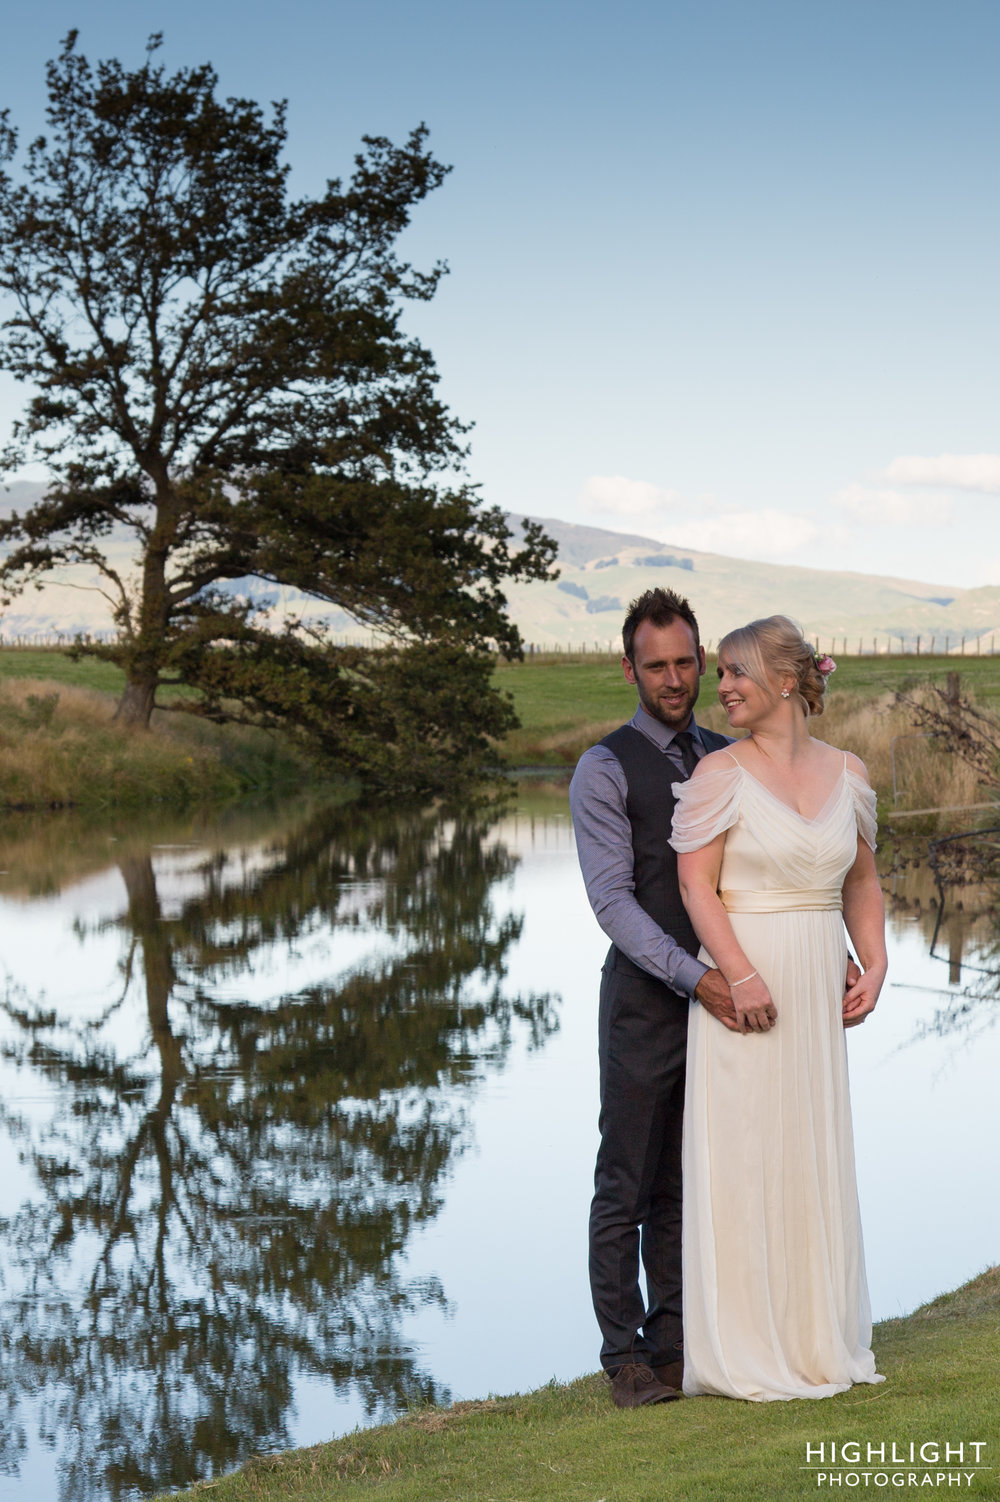 rose-johnny-highlight-wedding-photography-palmerston-north-manawatu-hiwinui-country-estate